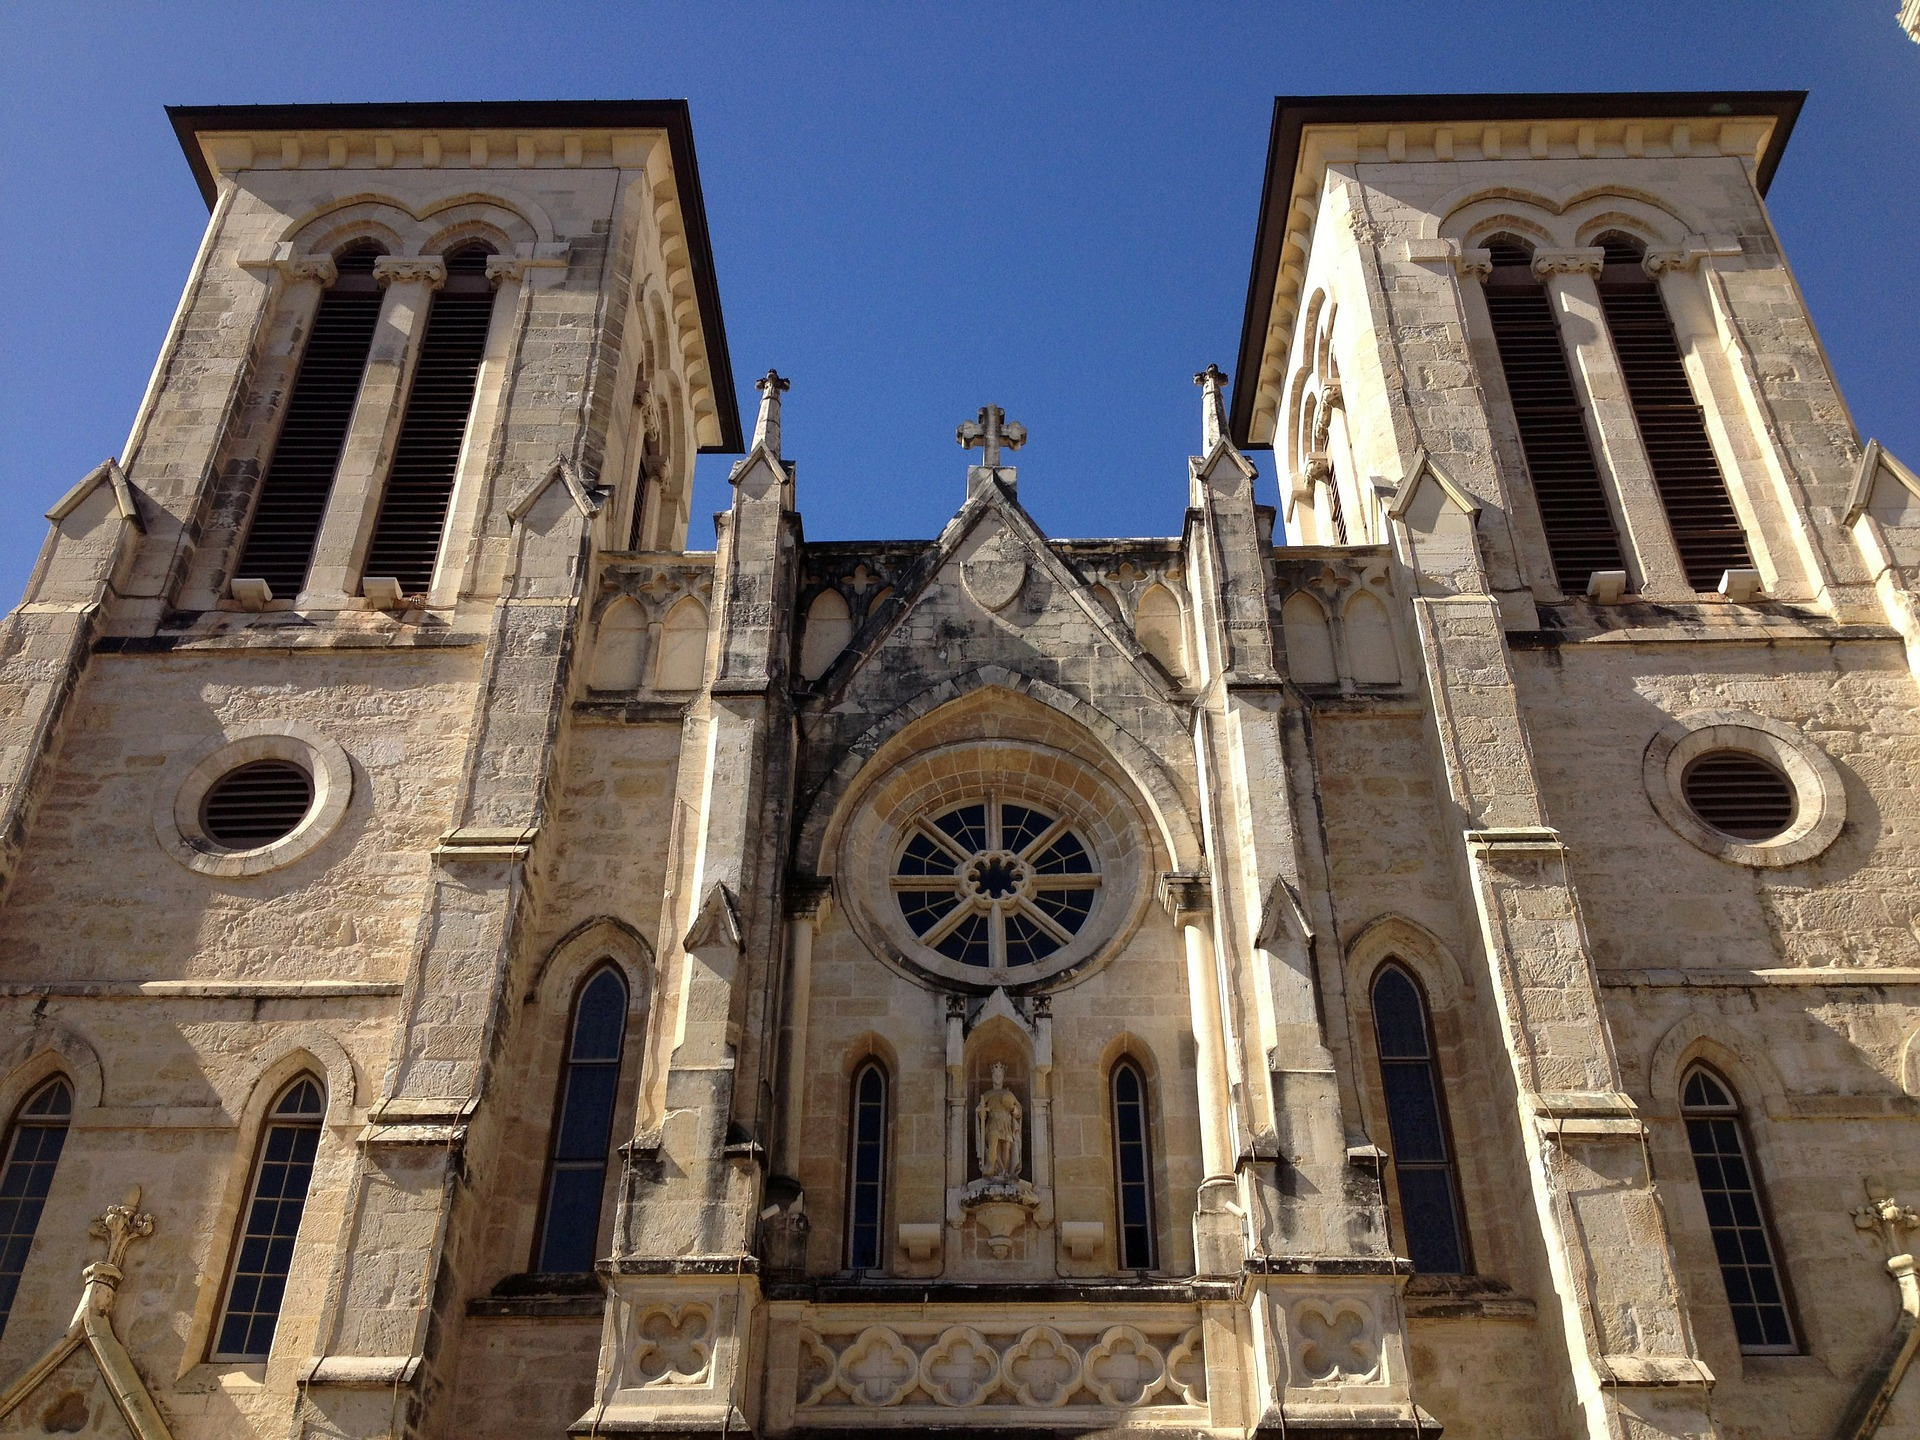 The San Fernando Cathedral was founded in 1731, making it one of the oldest cathedrals in the U.S. and the oldest cathedral in Texas.